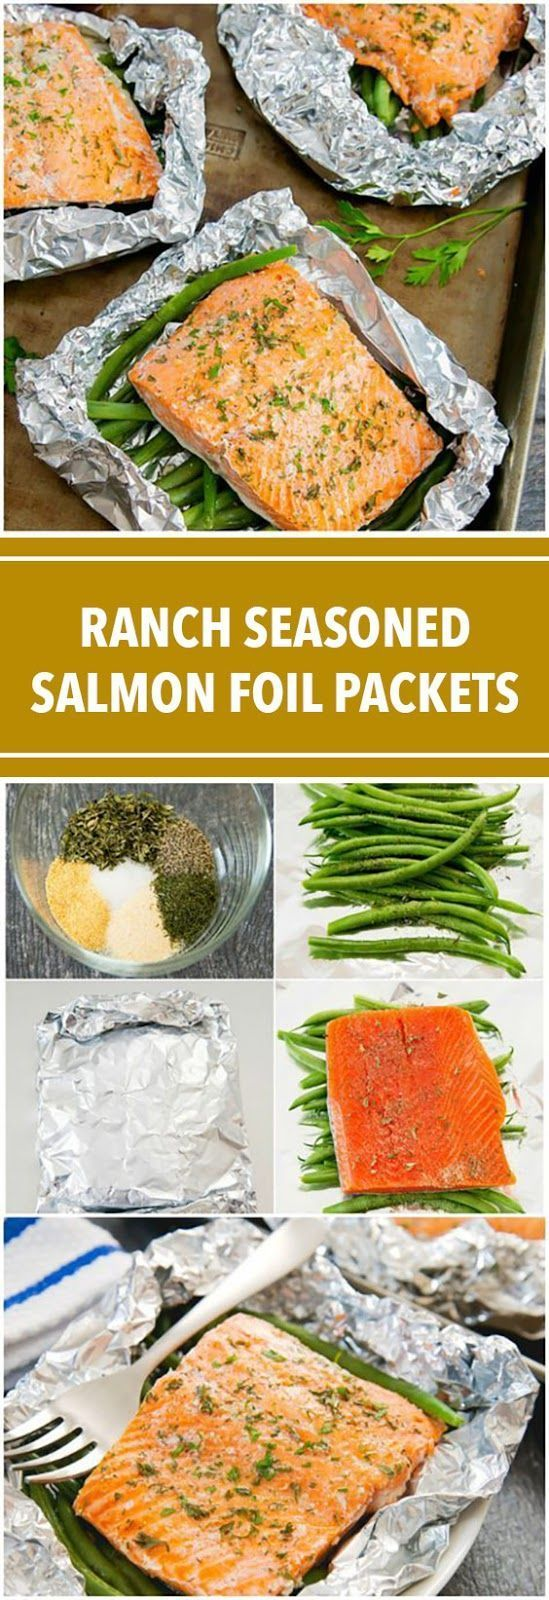 Photo of Foil Pack Recipe | Ranch Seasoned Salmon Foil Packets